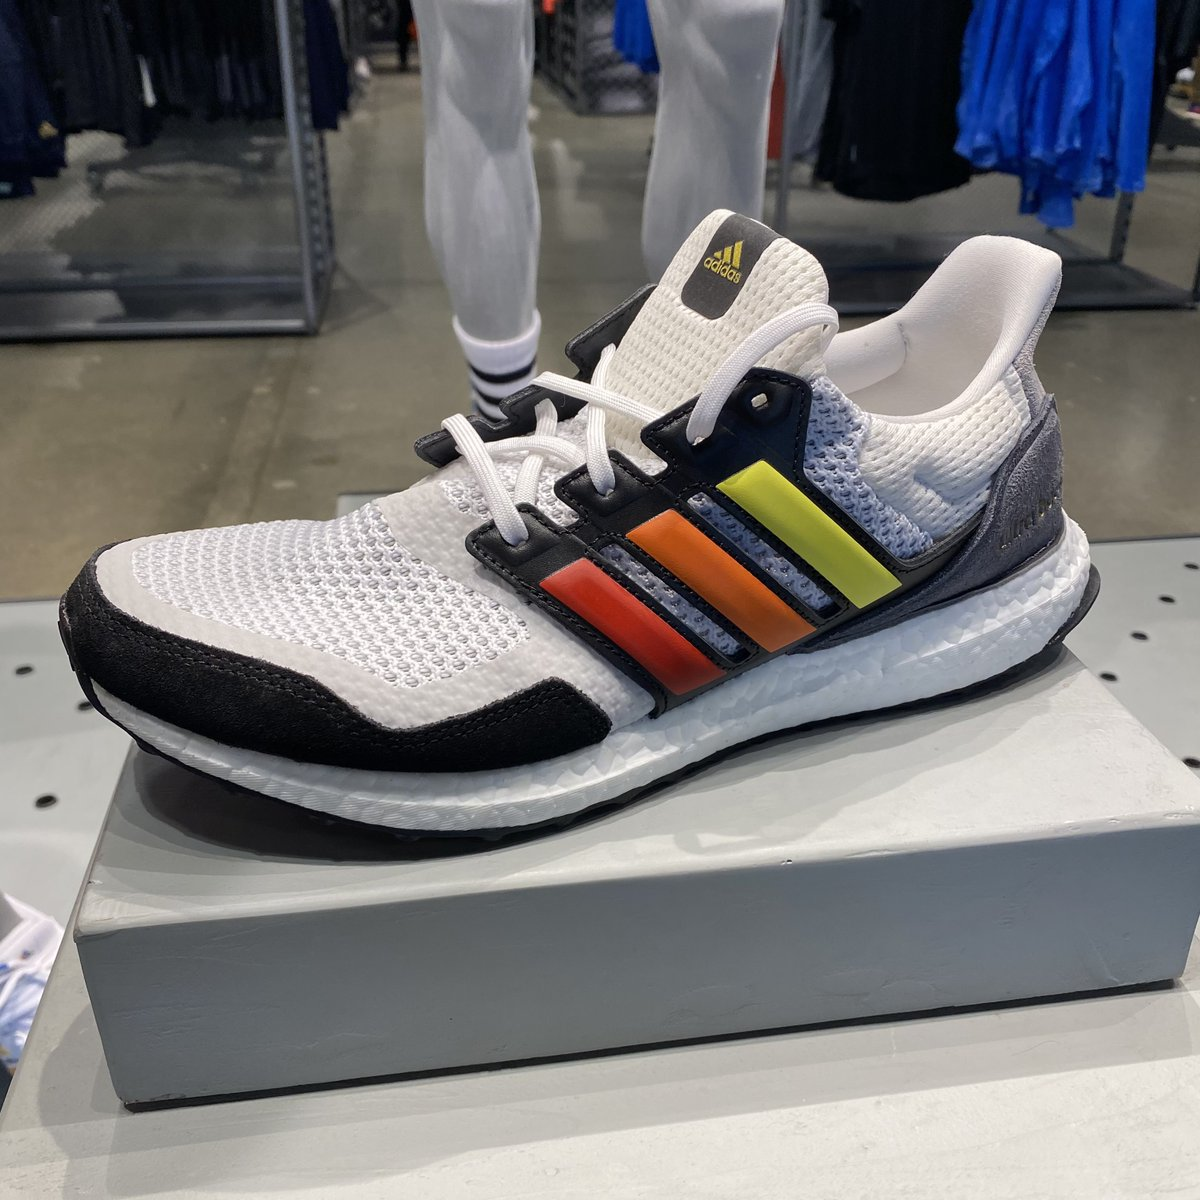 Hit the ground running this year with adidas Outlet Store.   #adidas #runningshoes #ultraboost #newyearsresolutions #houstonpremiumoutlets